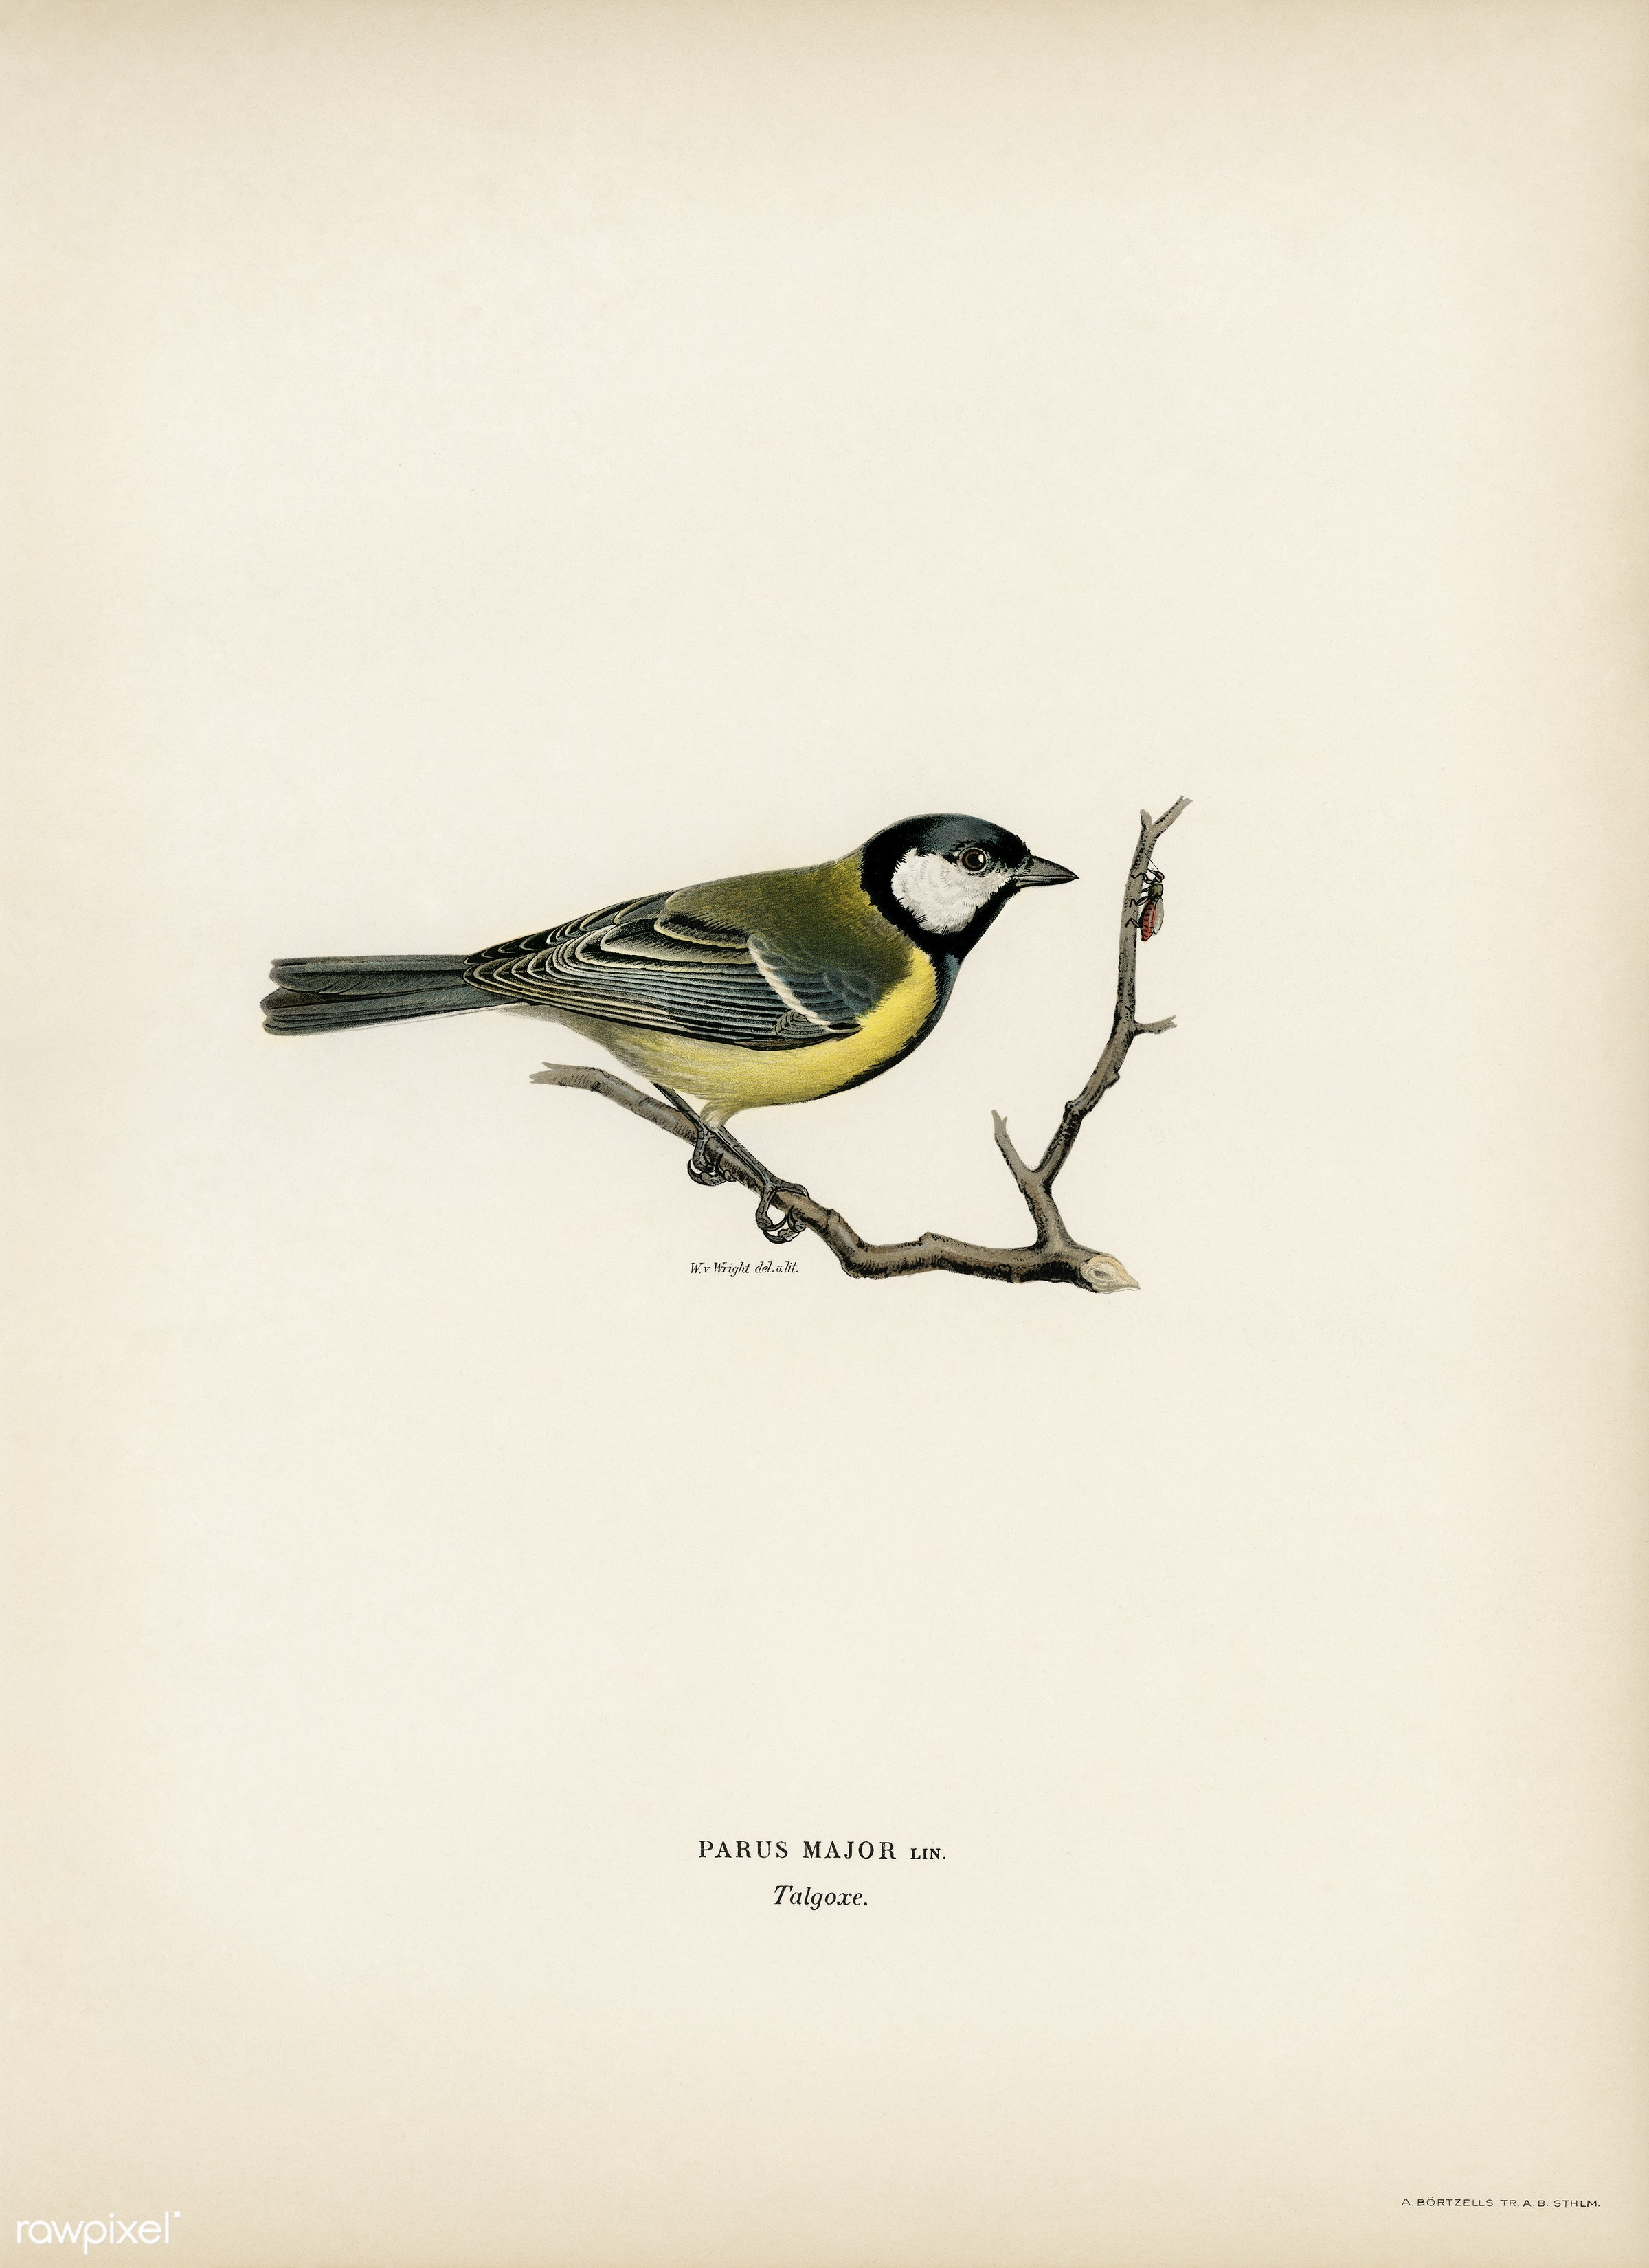 Talgoxe (PARUS MAJOR LIN.) illustrated by the von Wright brothers. Digitally enhanced from our own 1929 folio version of...